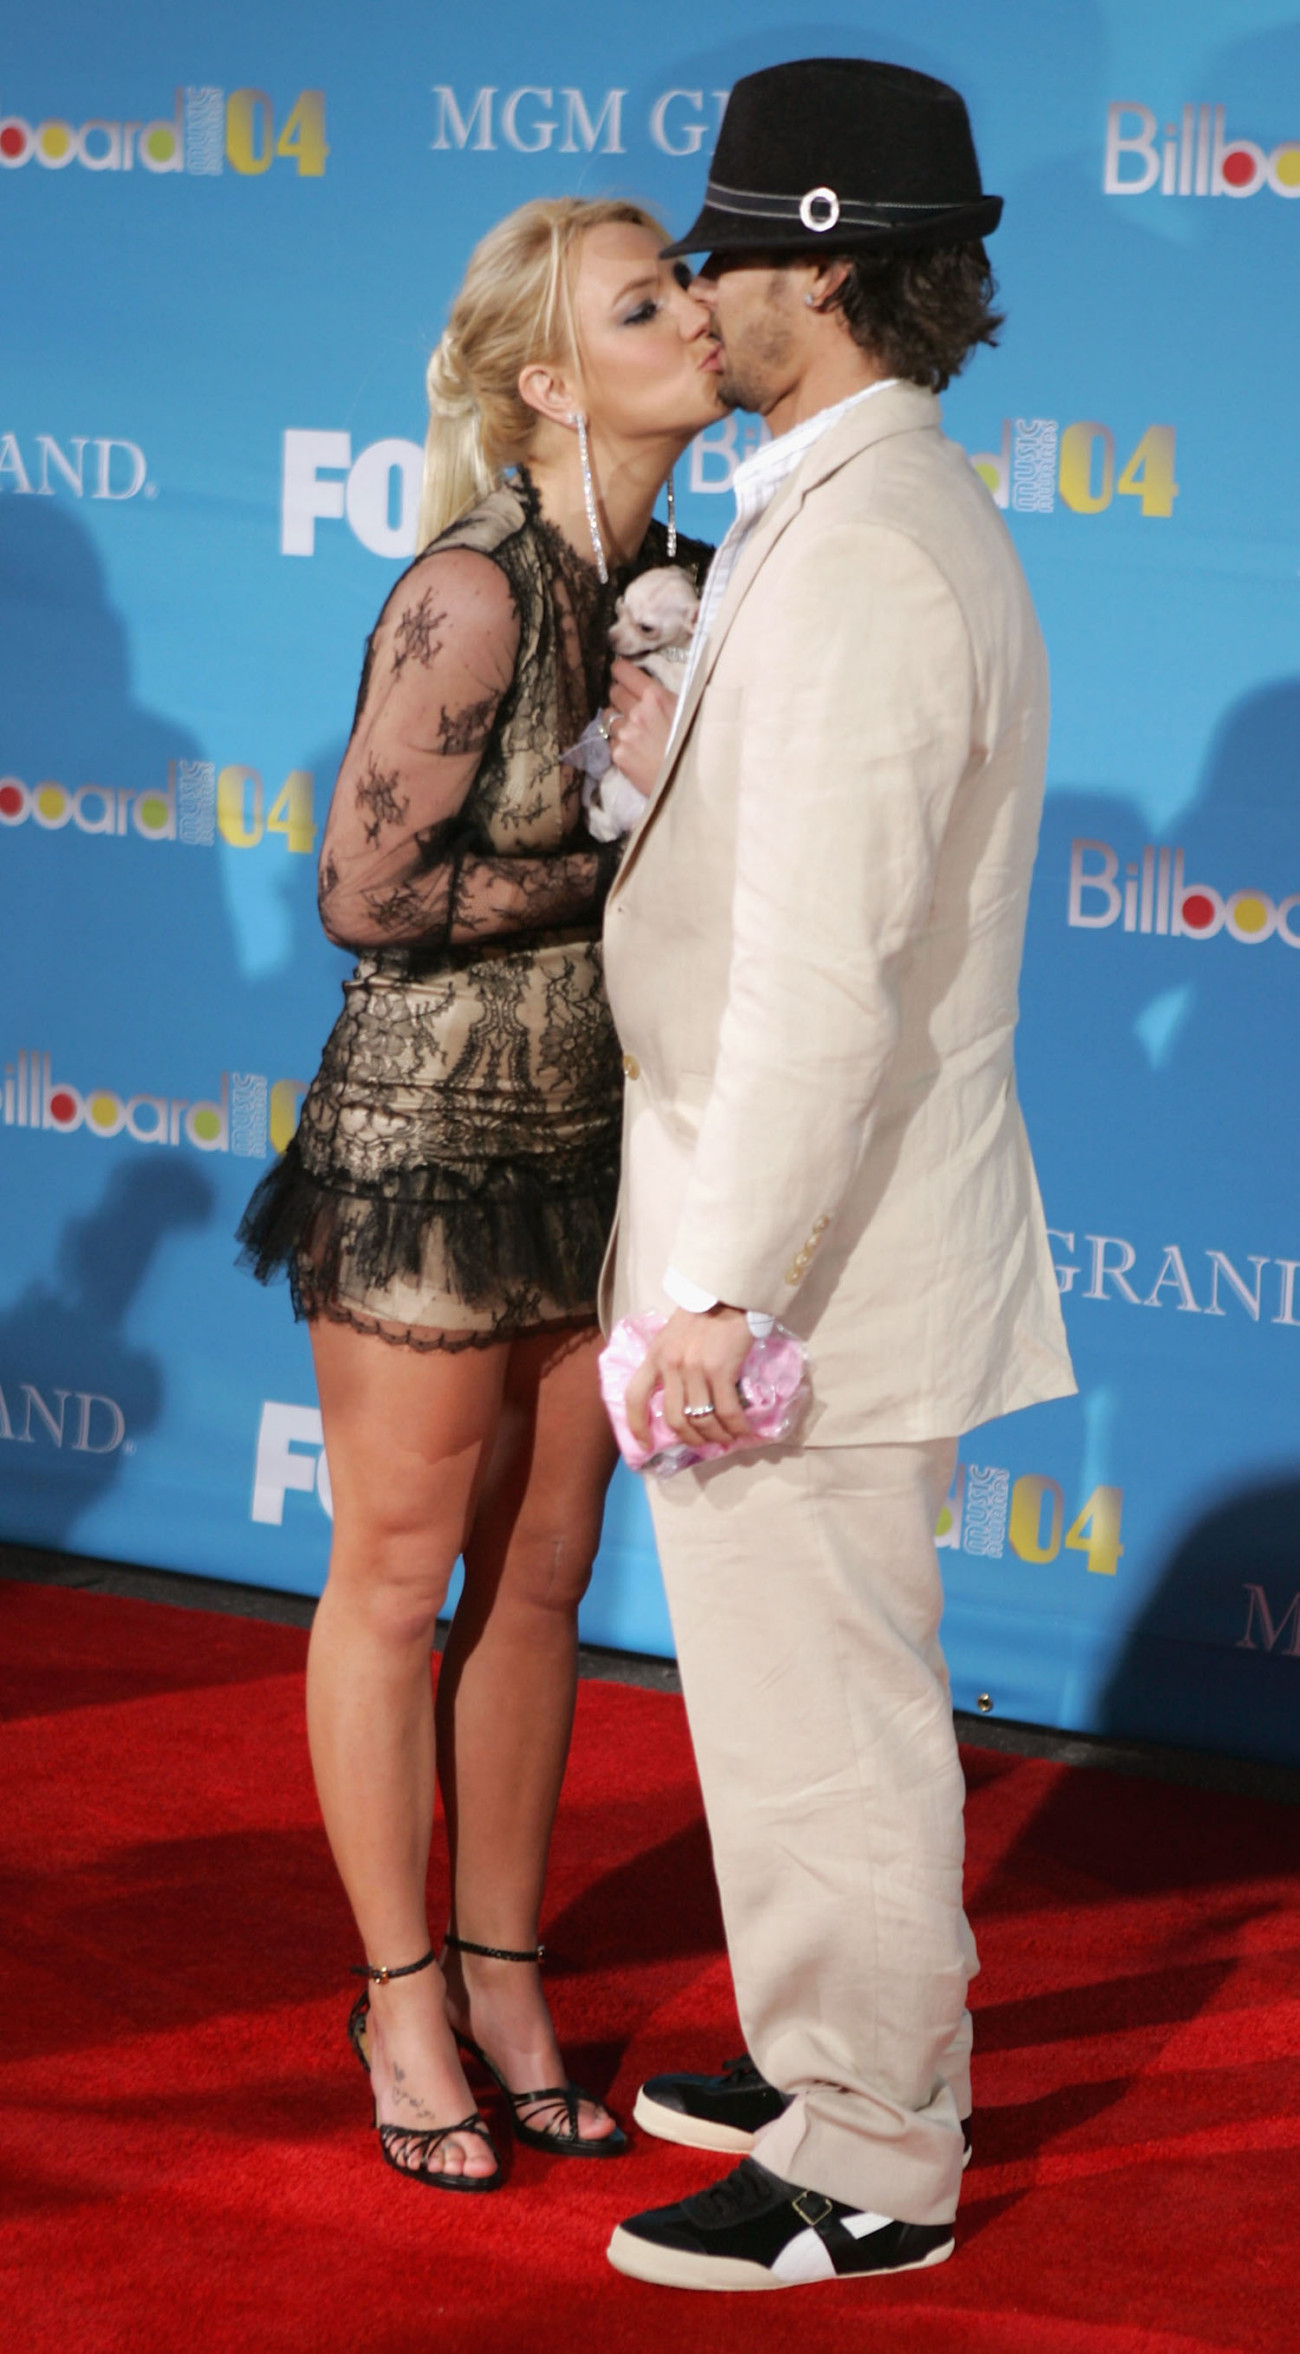 LAS VEGAS - DECEMBER 8:  Singer Britney Spears and husband Kevin Federline kiss as they arrive at the 2004 Billboard Music Awards on December 8, 2004 at the MGM Grand Garden Arena, in Las Vegas, Nevada. (Photo by Frazer Harrison/Getty Images)